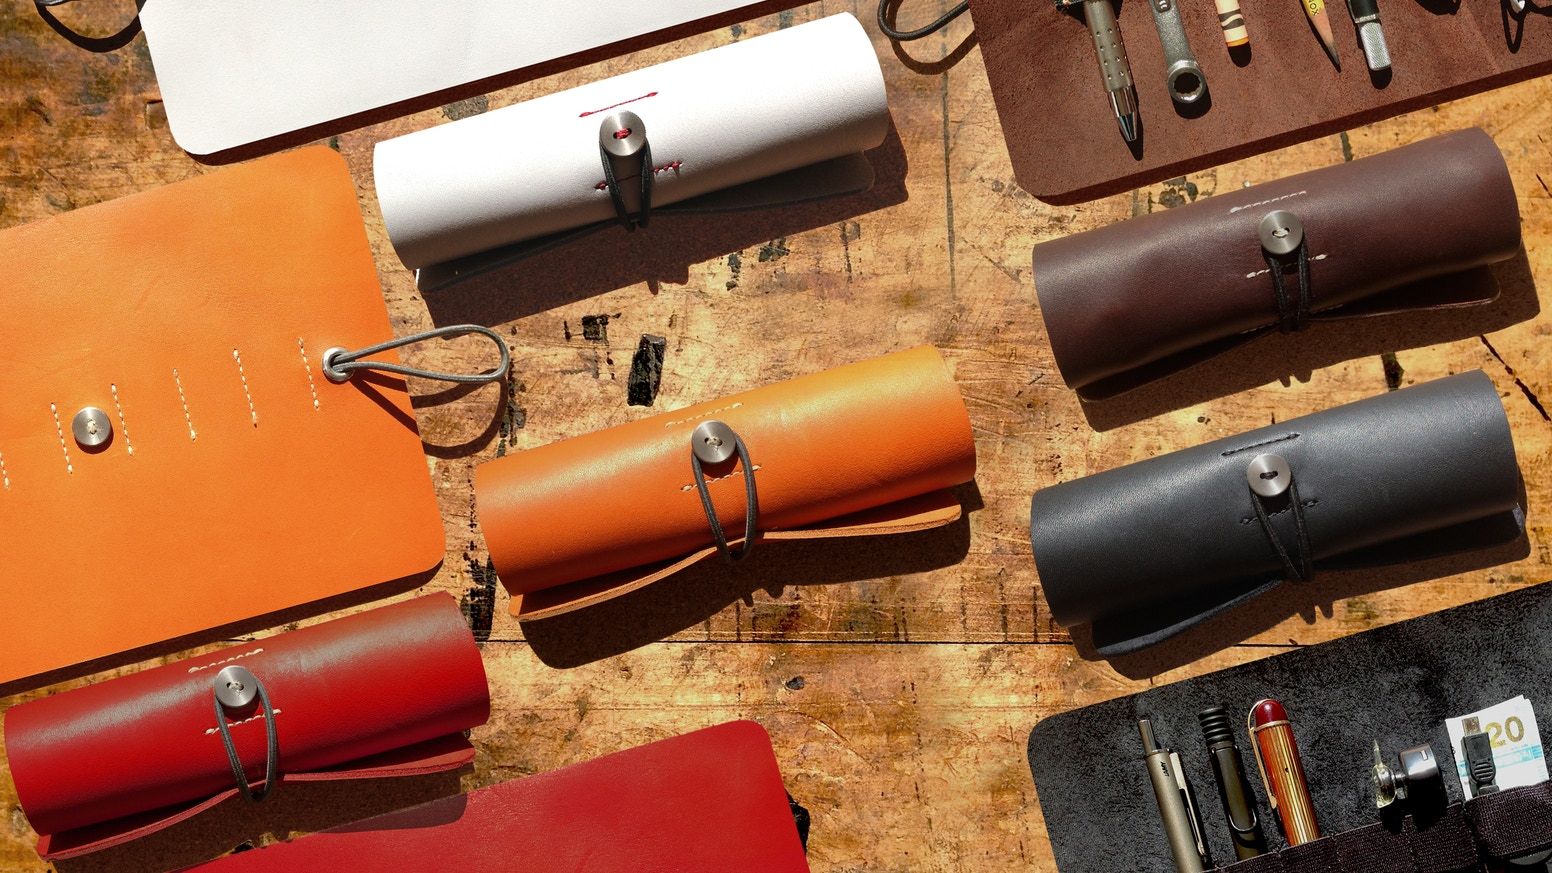 A versatile, tailored tool roll designed for everyone; hand-crafted from full-grain baseball glove leather.